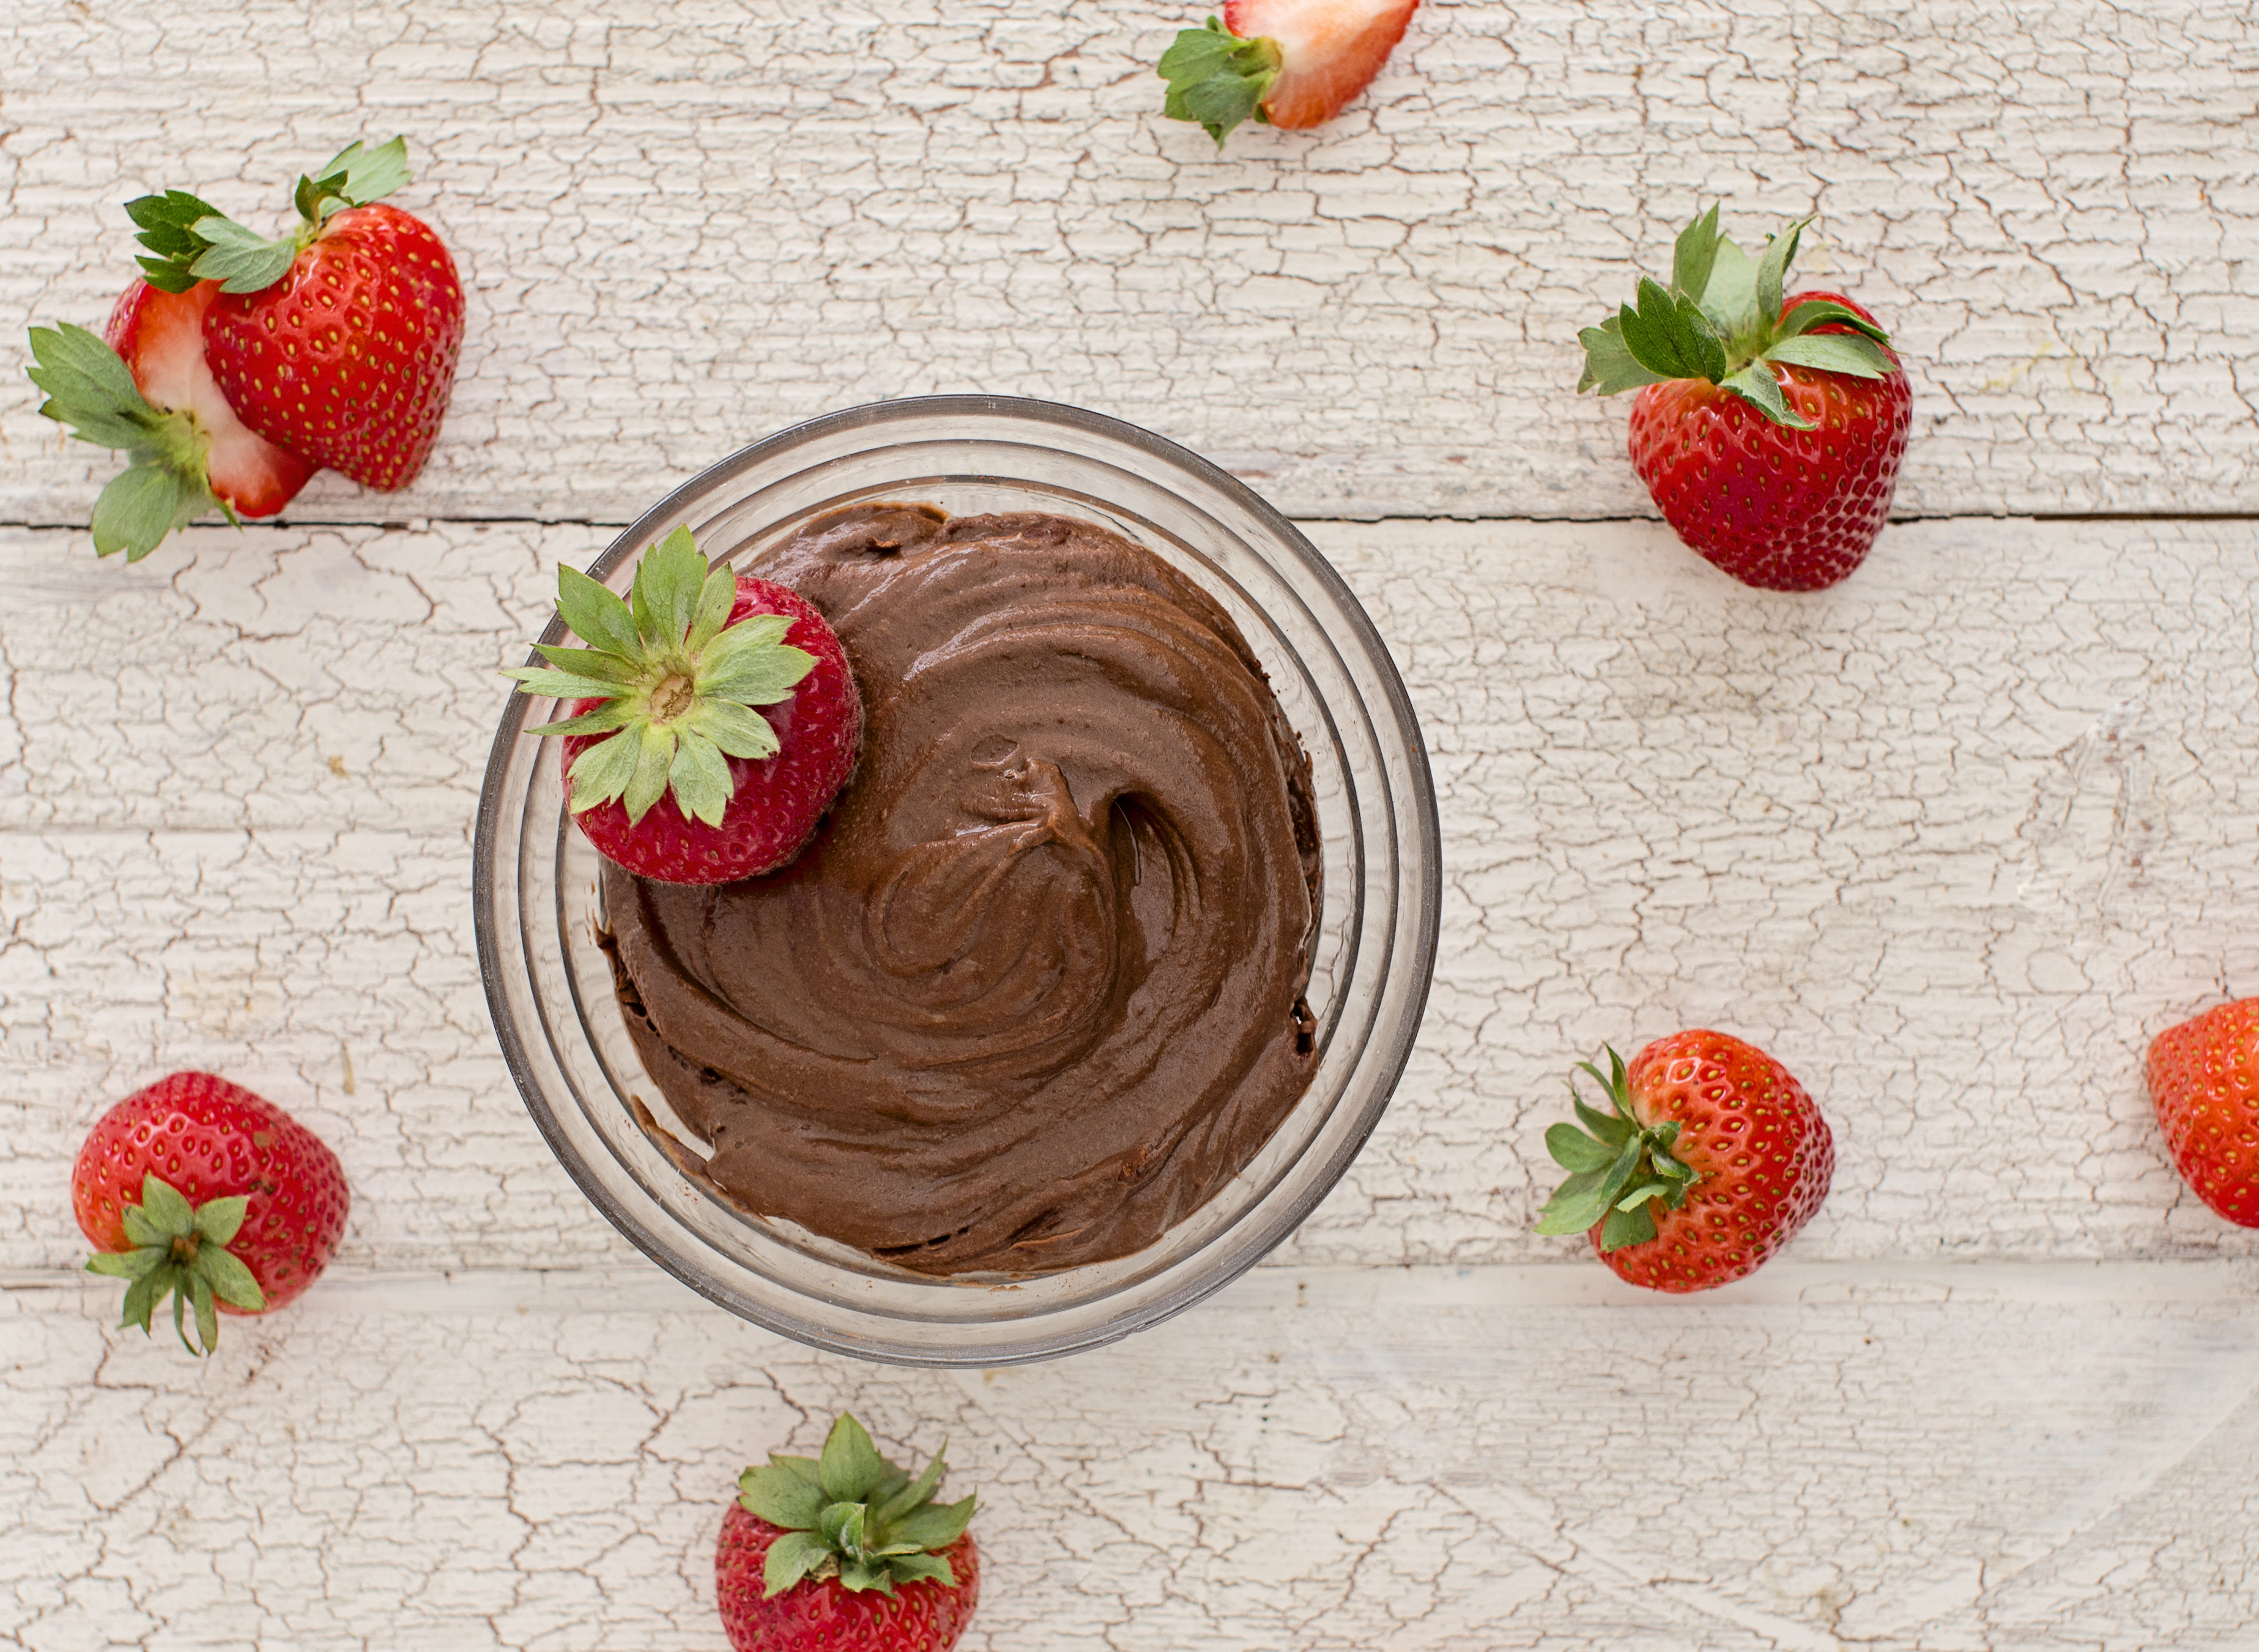 Holy Fudge! Our New Chocolate Spread, Inspired By Addie